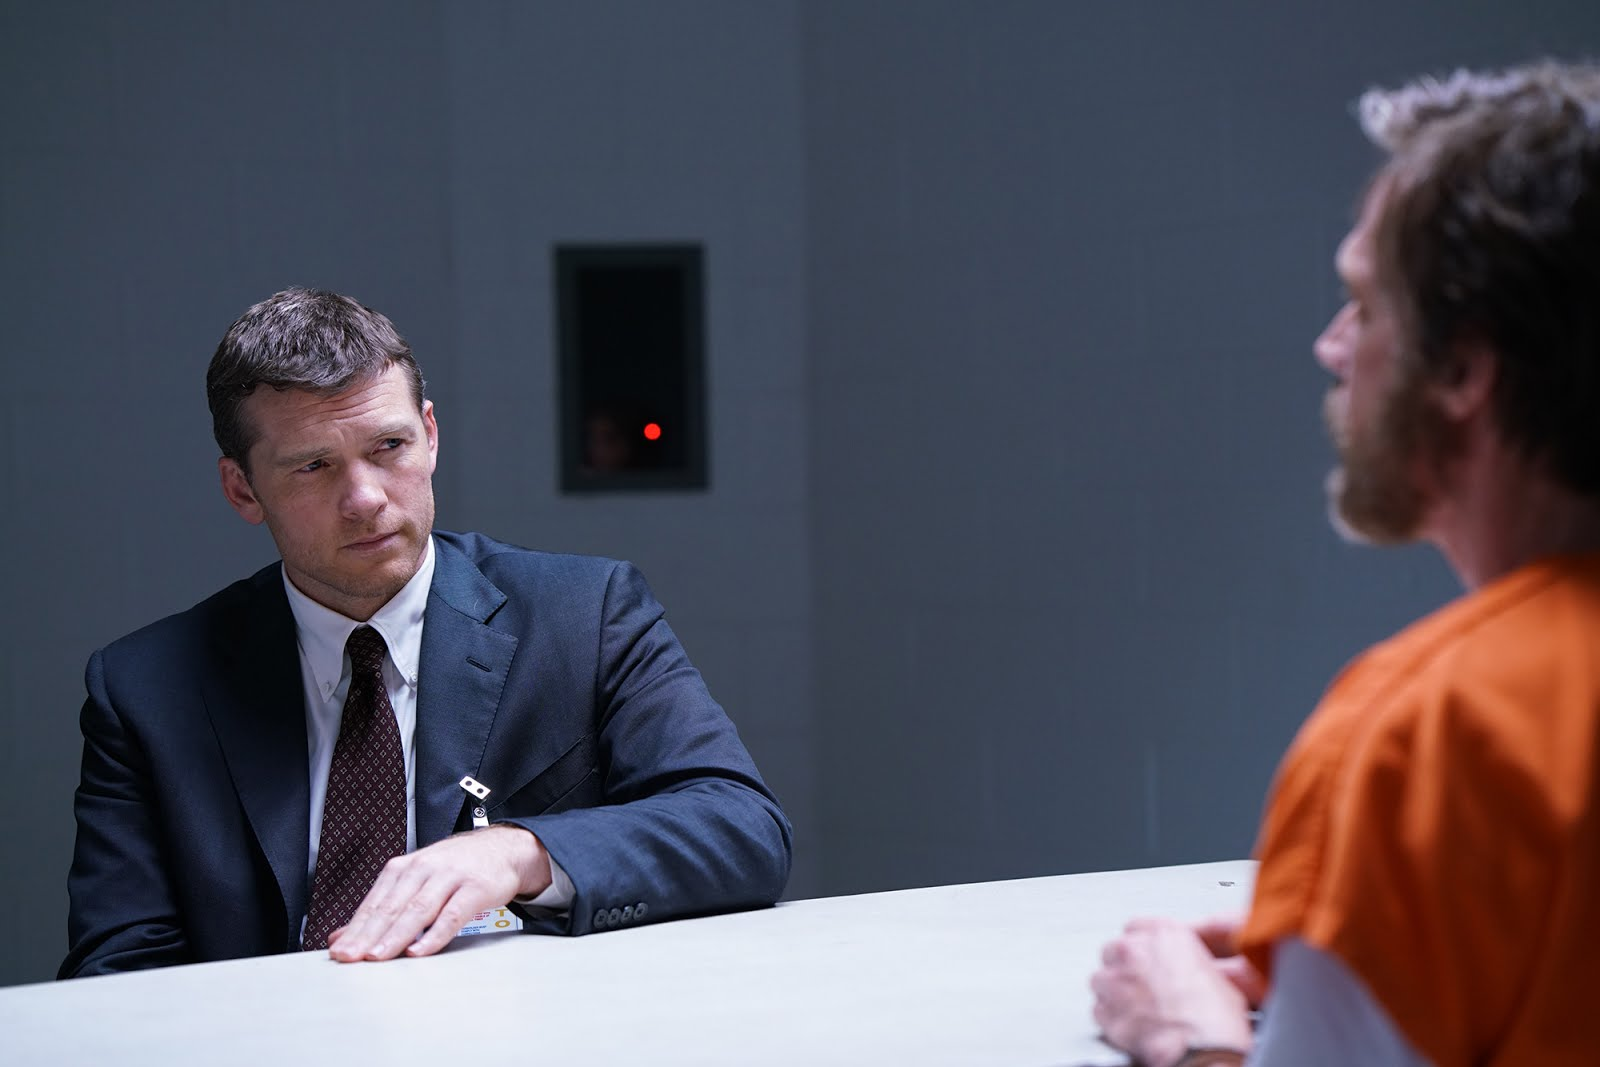 Sam Worthington y Paul Bettany son Jim Fitzgerald y Ted Kaczynski en Manhunt: Unabomber